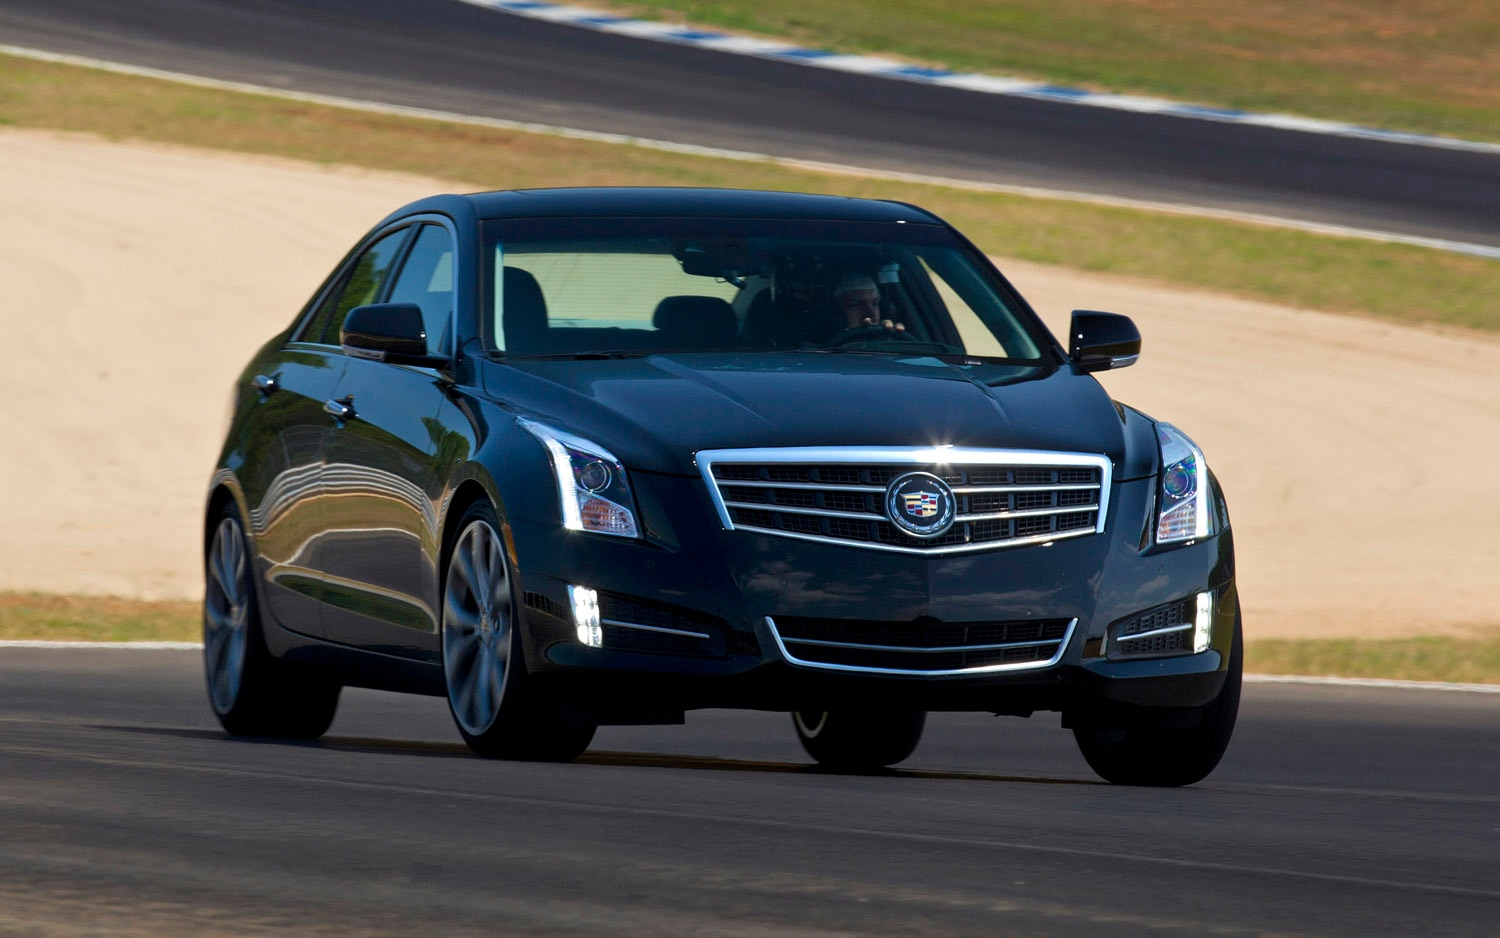 nhtsa gives 2013 cadillac ats perfect score and five star overall rating. Black Bedroom Furniture Sets. Home Design Ideas